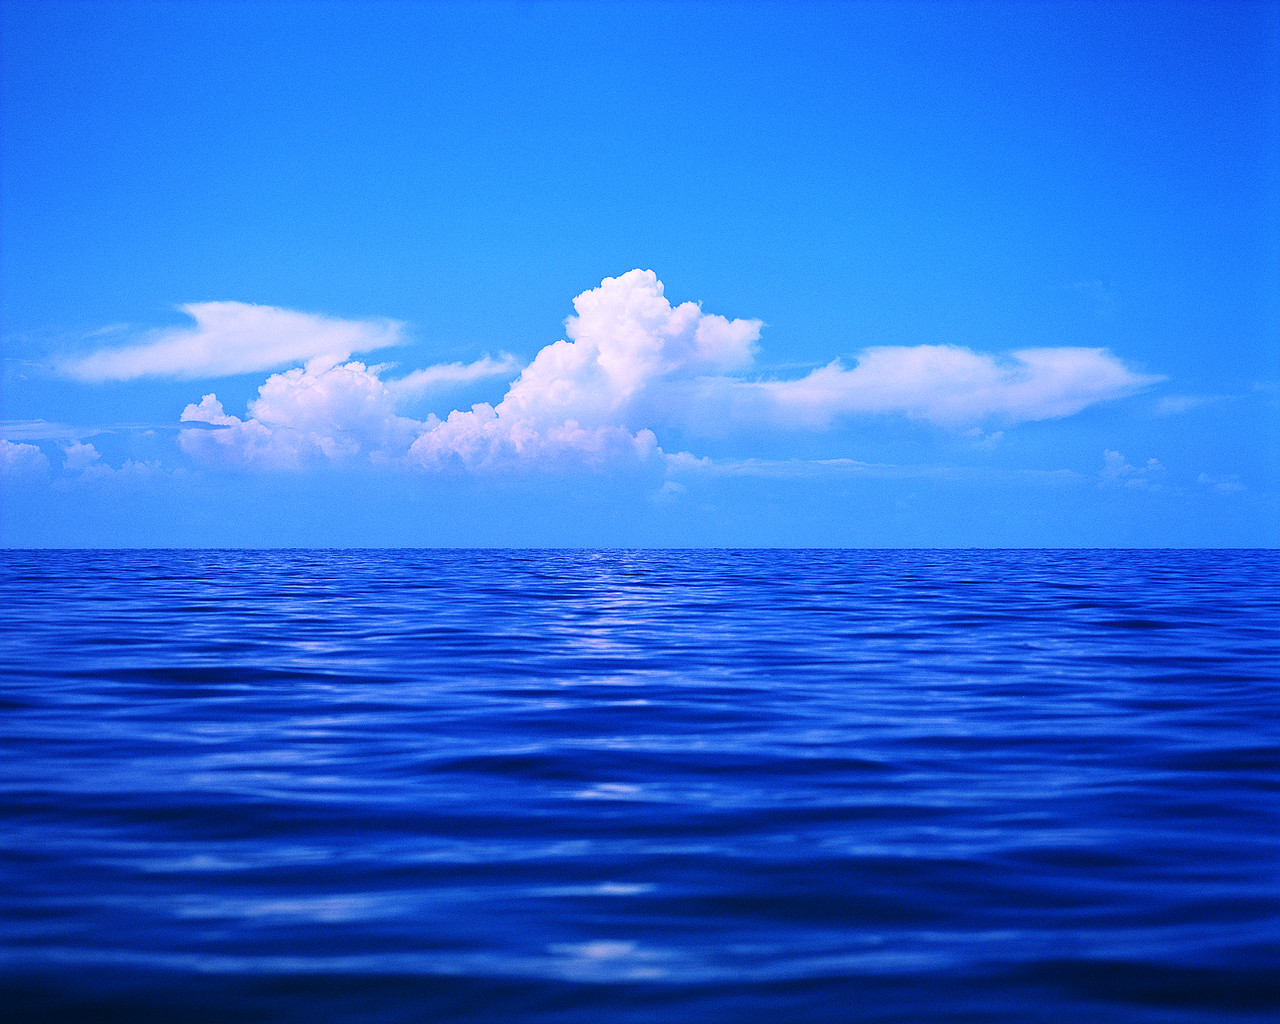 For Many Years Those Who Love The Ocean For A Variety Of Personal